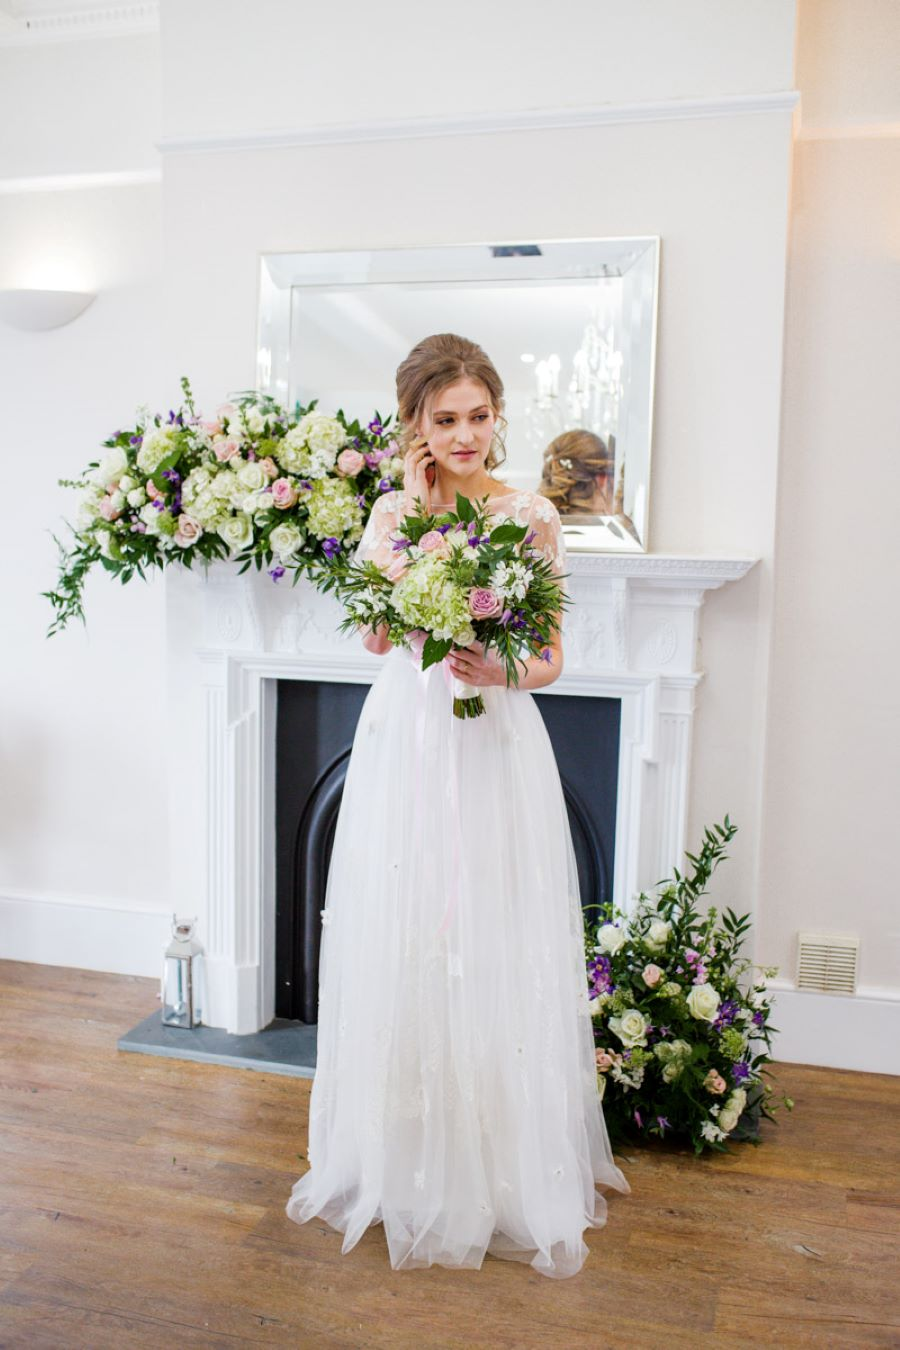 Light and romance with natural blush tones - wedding ideas from Downham Hall. Photographer credit Magical Moments Photography (18)